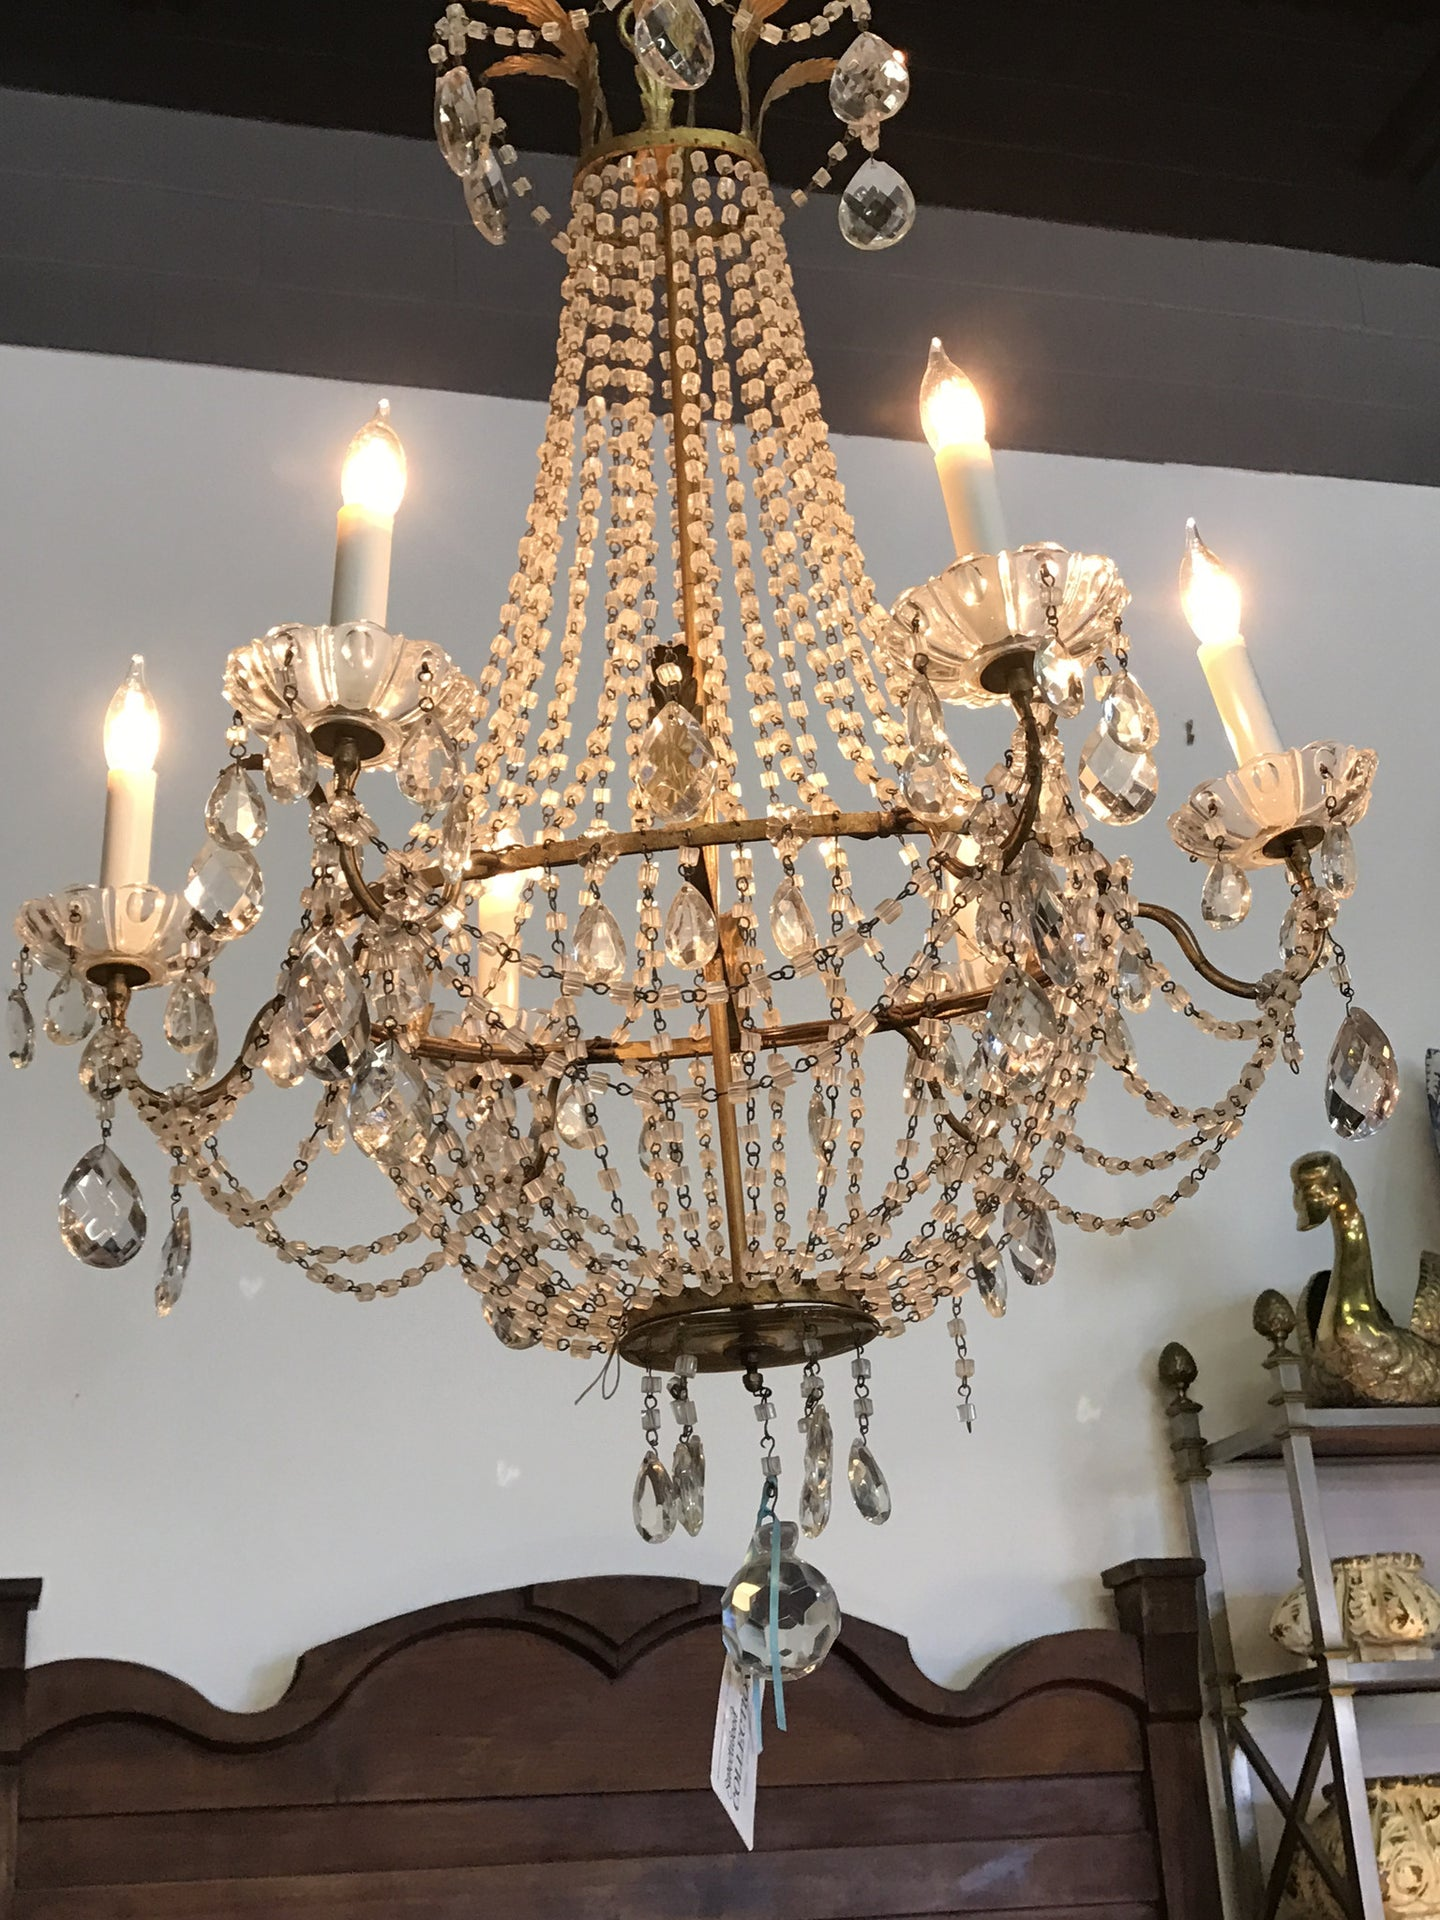 Antique French 6 Arm Chandelier with Macaroni crystal beading - The Sweetwood Collection